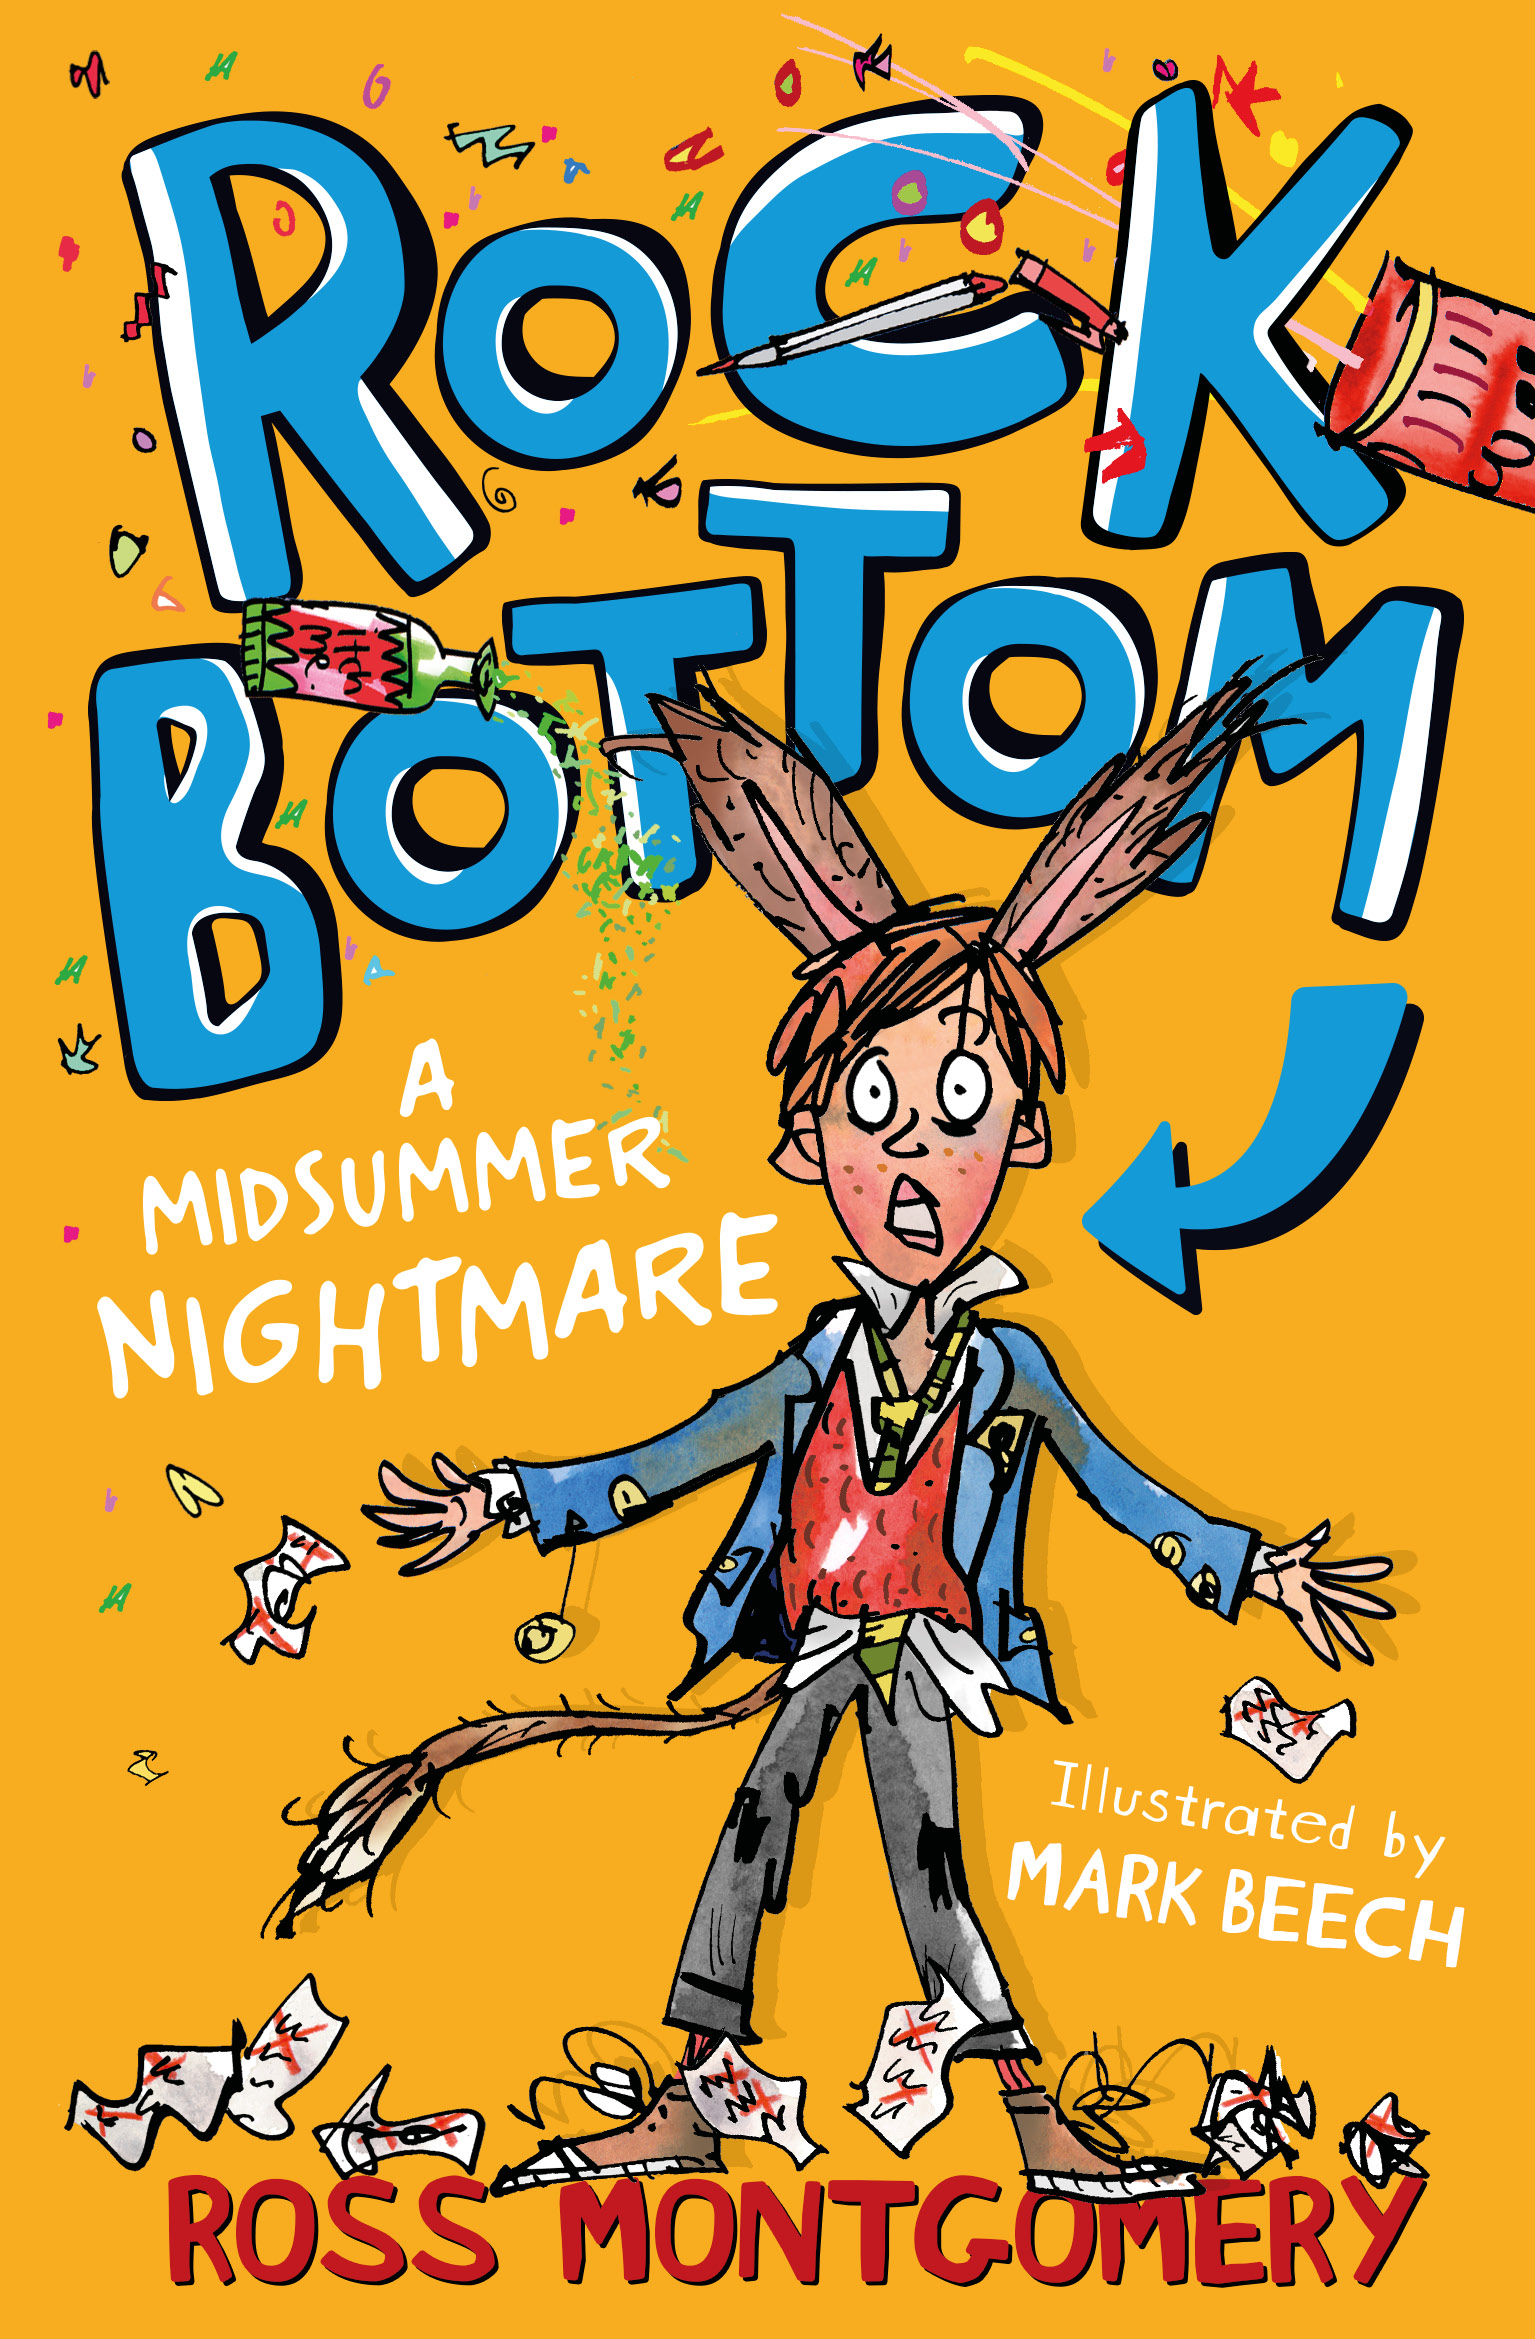 Rock Bottom: A Midsummer Nightmare